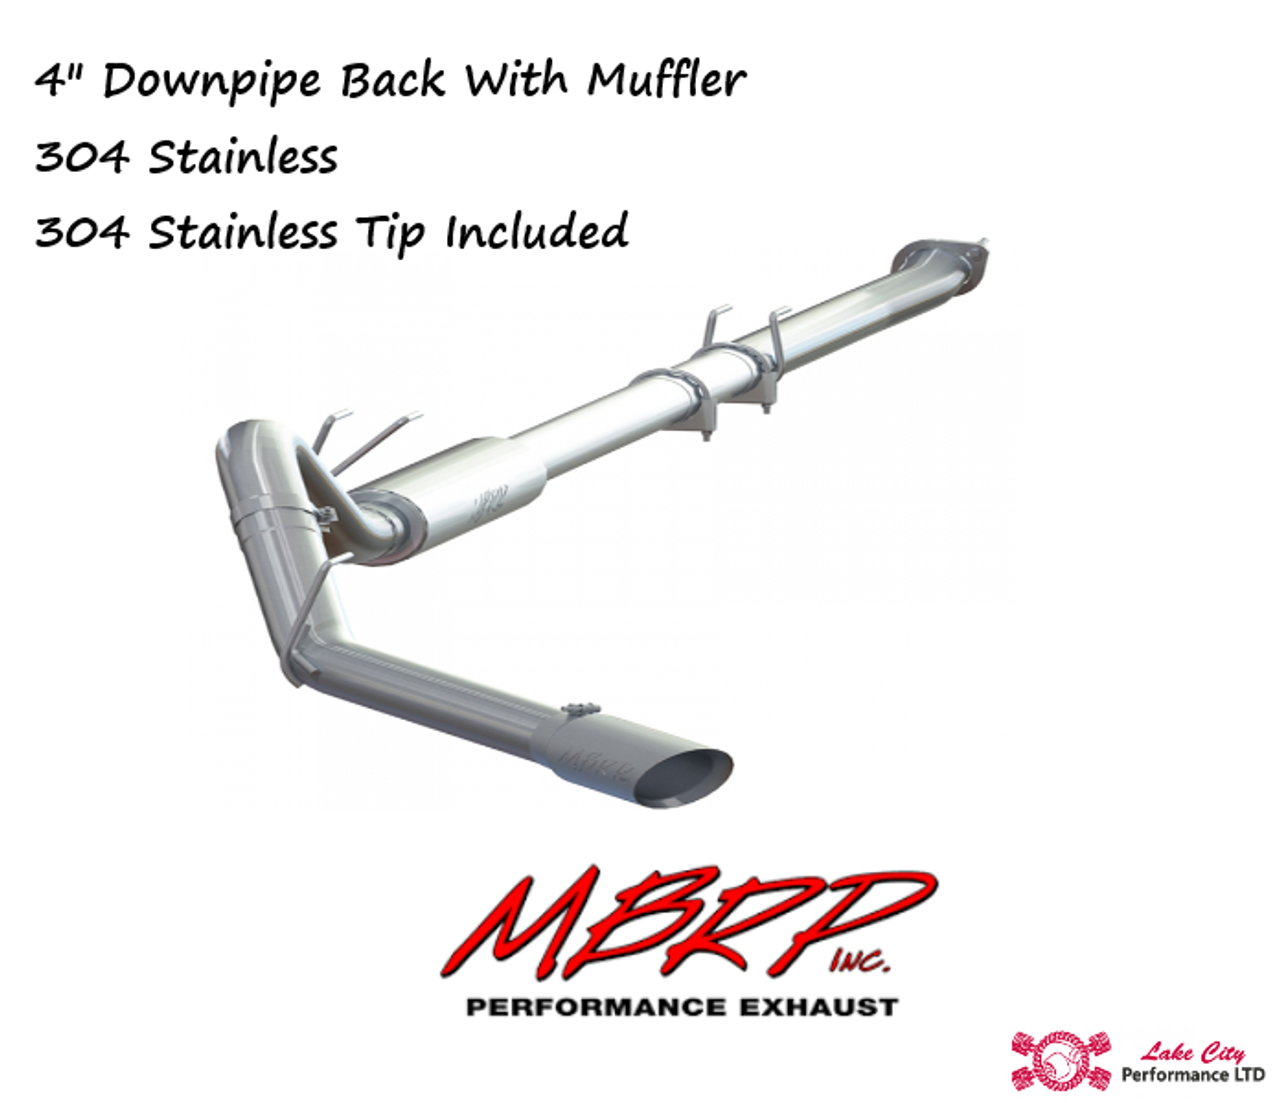 "2011-2016 Ford Powerstroke 6.7L MBRP (P1 Pro Series) 4"" Downpipe Back Stainless Race Exhaust With Muffler (Includes Free Tip) C6262304"